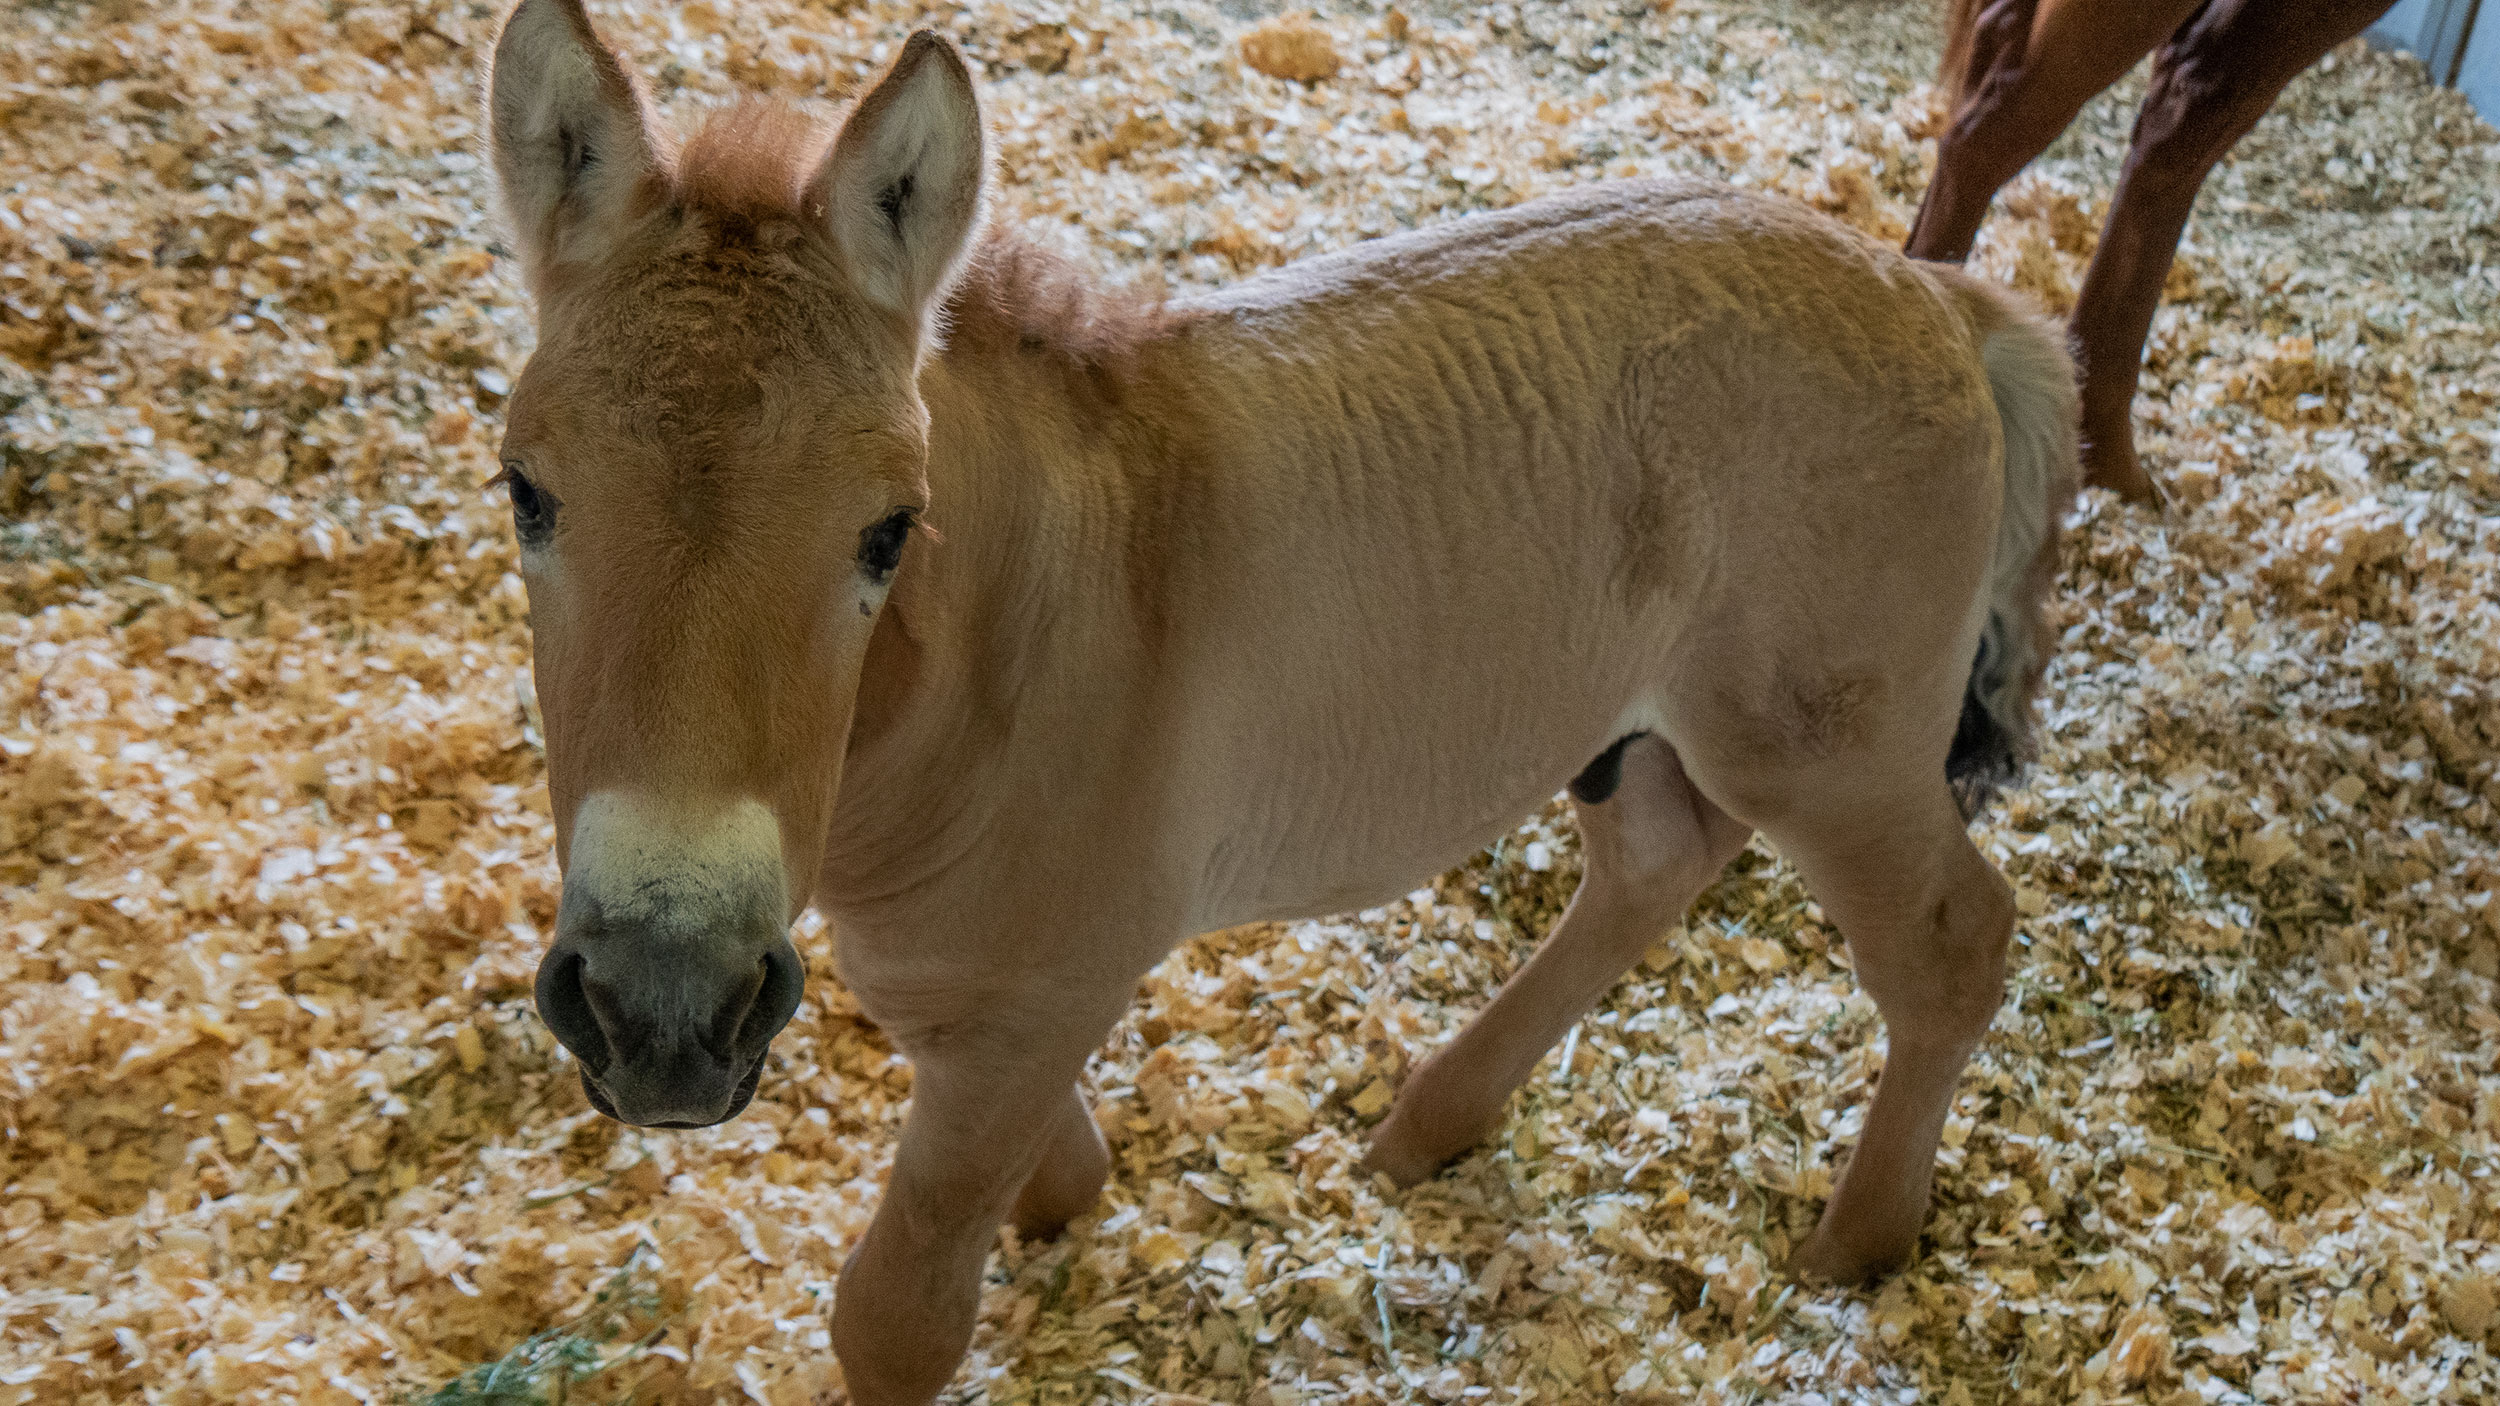 A clone of the endangered Przewalski's horse is born of DNA saved for 40 years